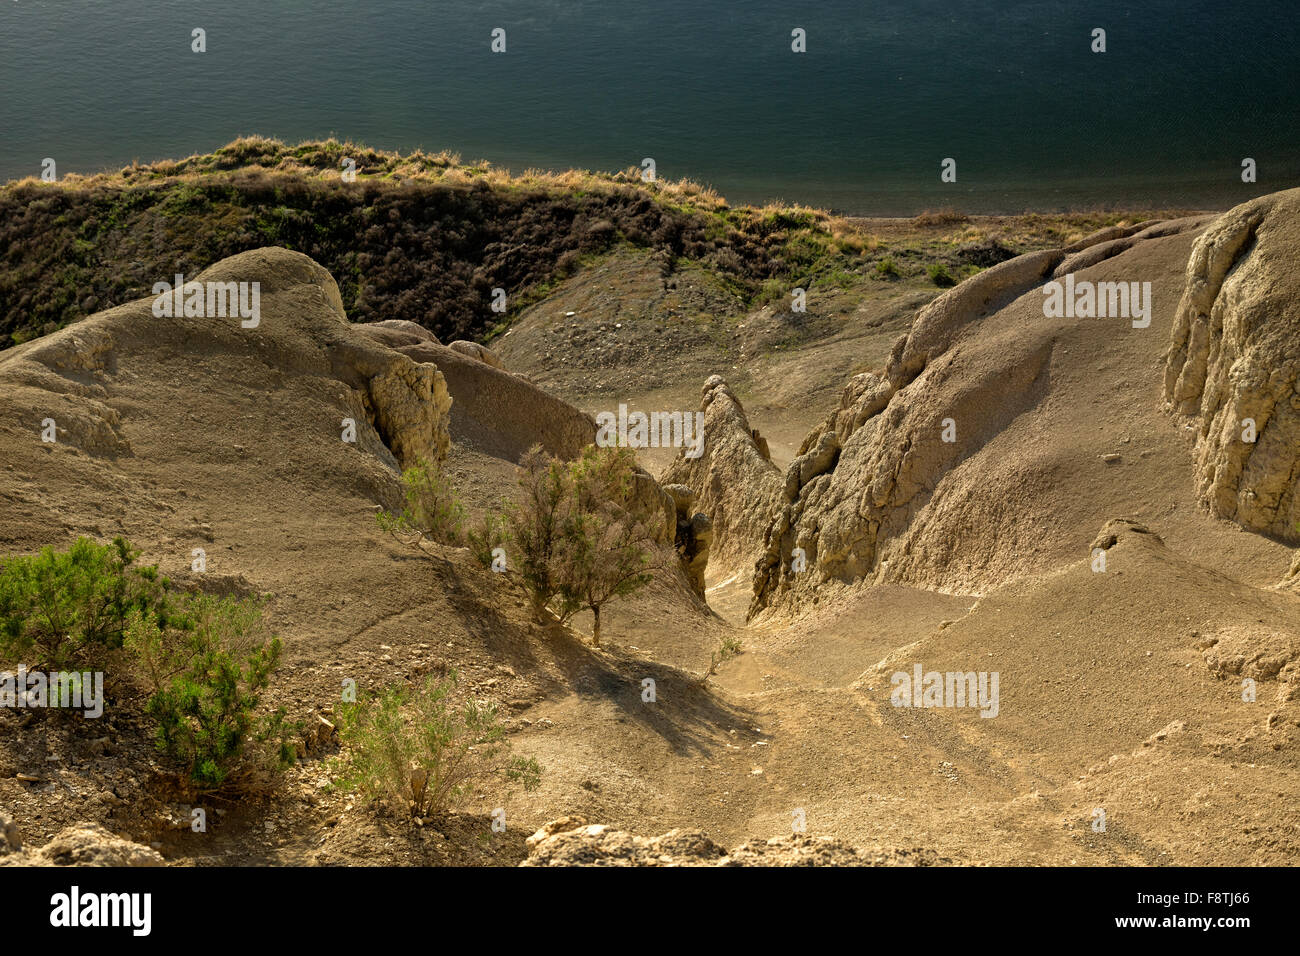 WASHINGTON - The White Bluffs at sundown on the banks of the Columbia River in the Hanford Reach National Monument. - Stock Image